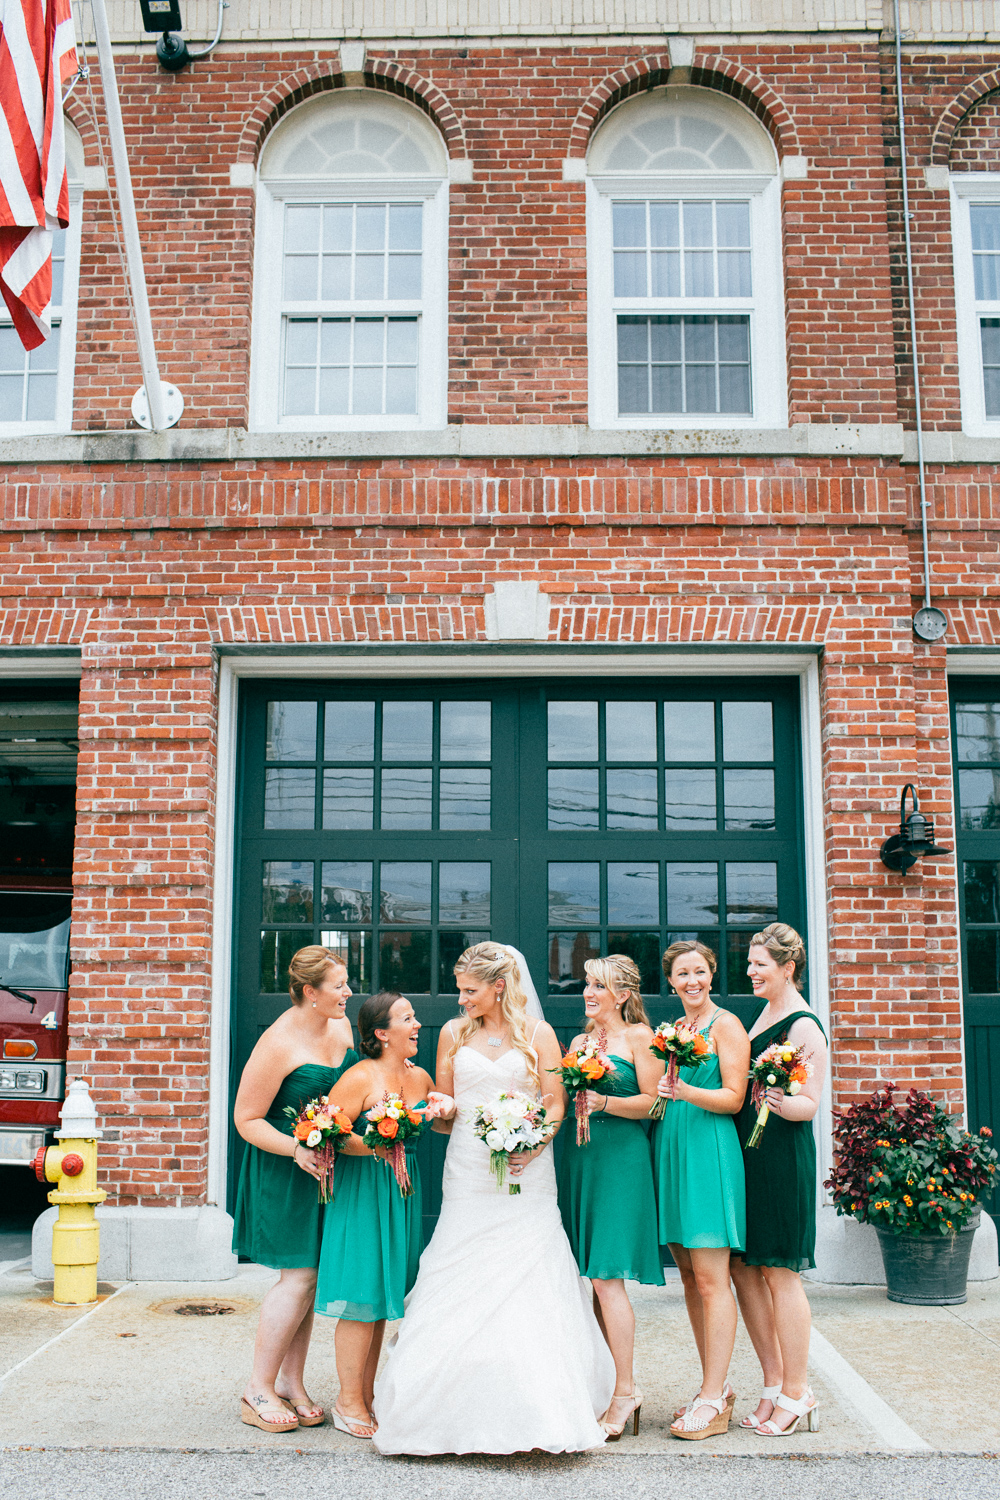 0815_colorful_nh_wedding_017.jpg